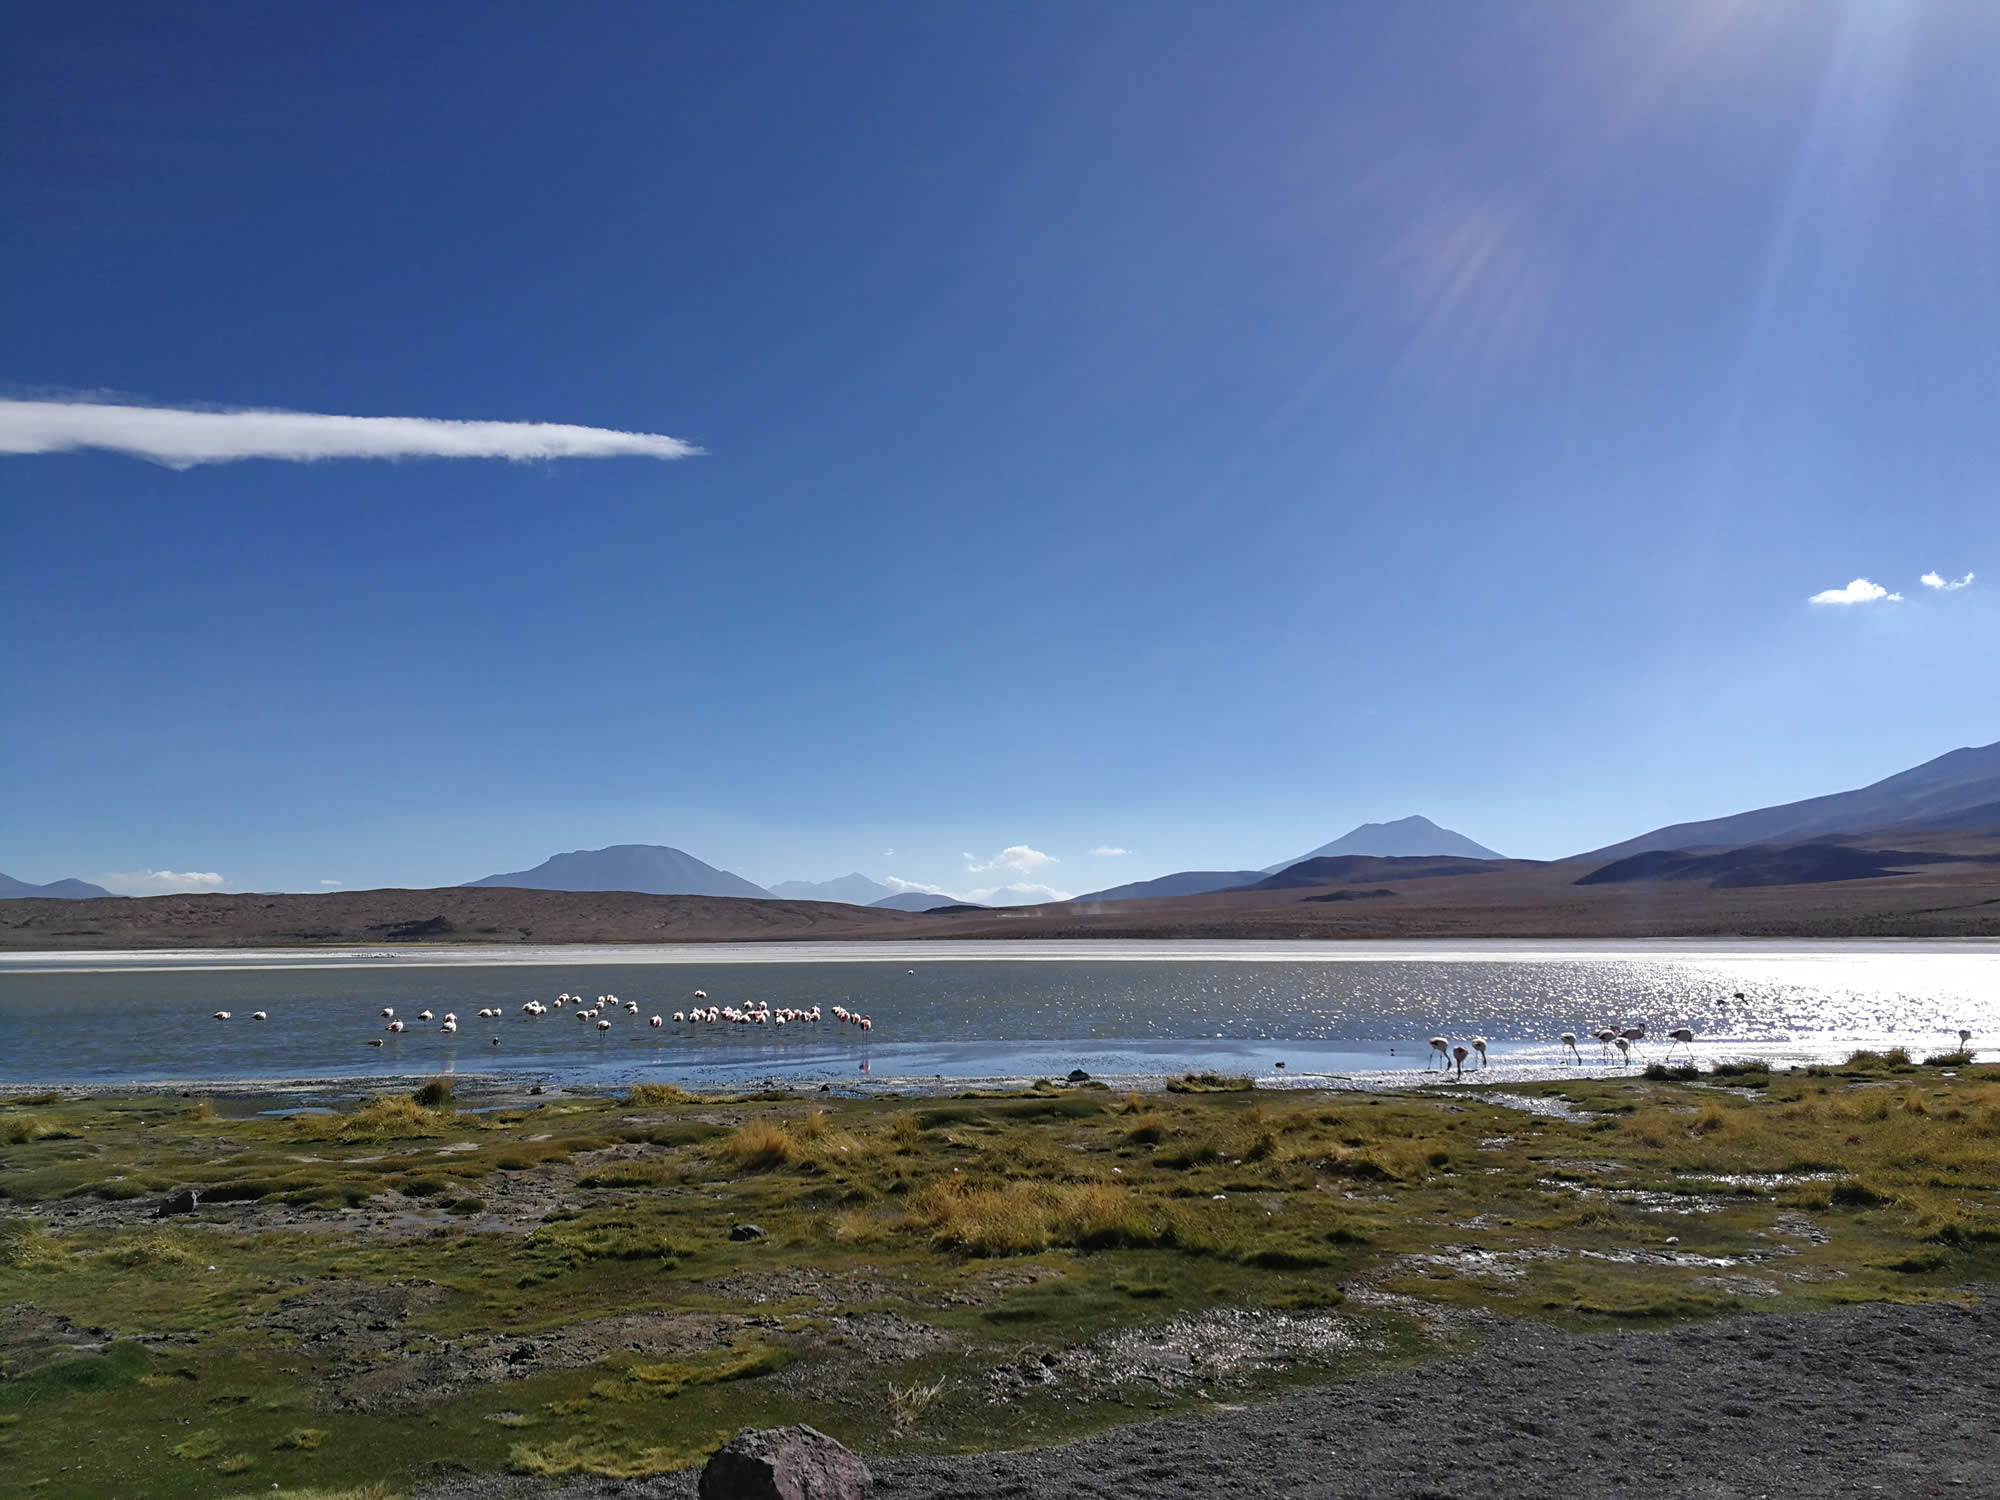 Private Tour Uyuni Salt Flat and Minor Lagoons, 2 Days, 1 Night